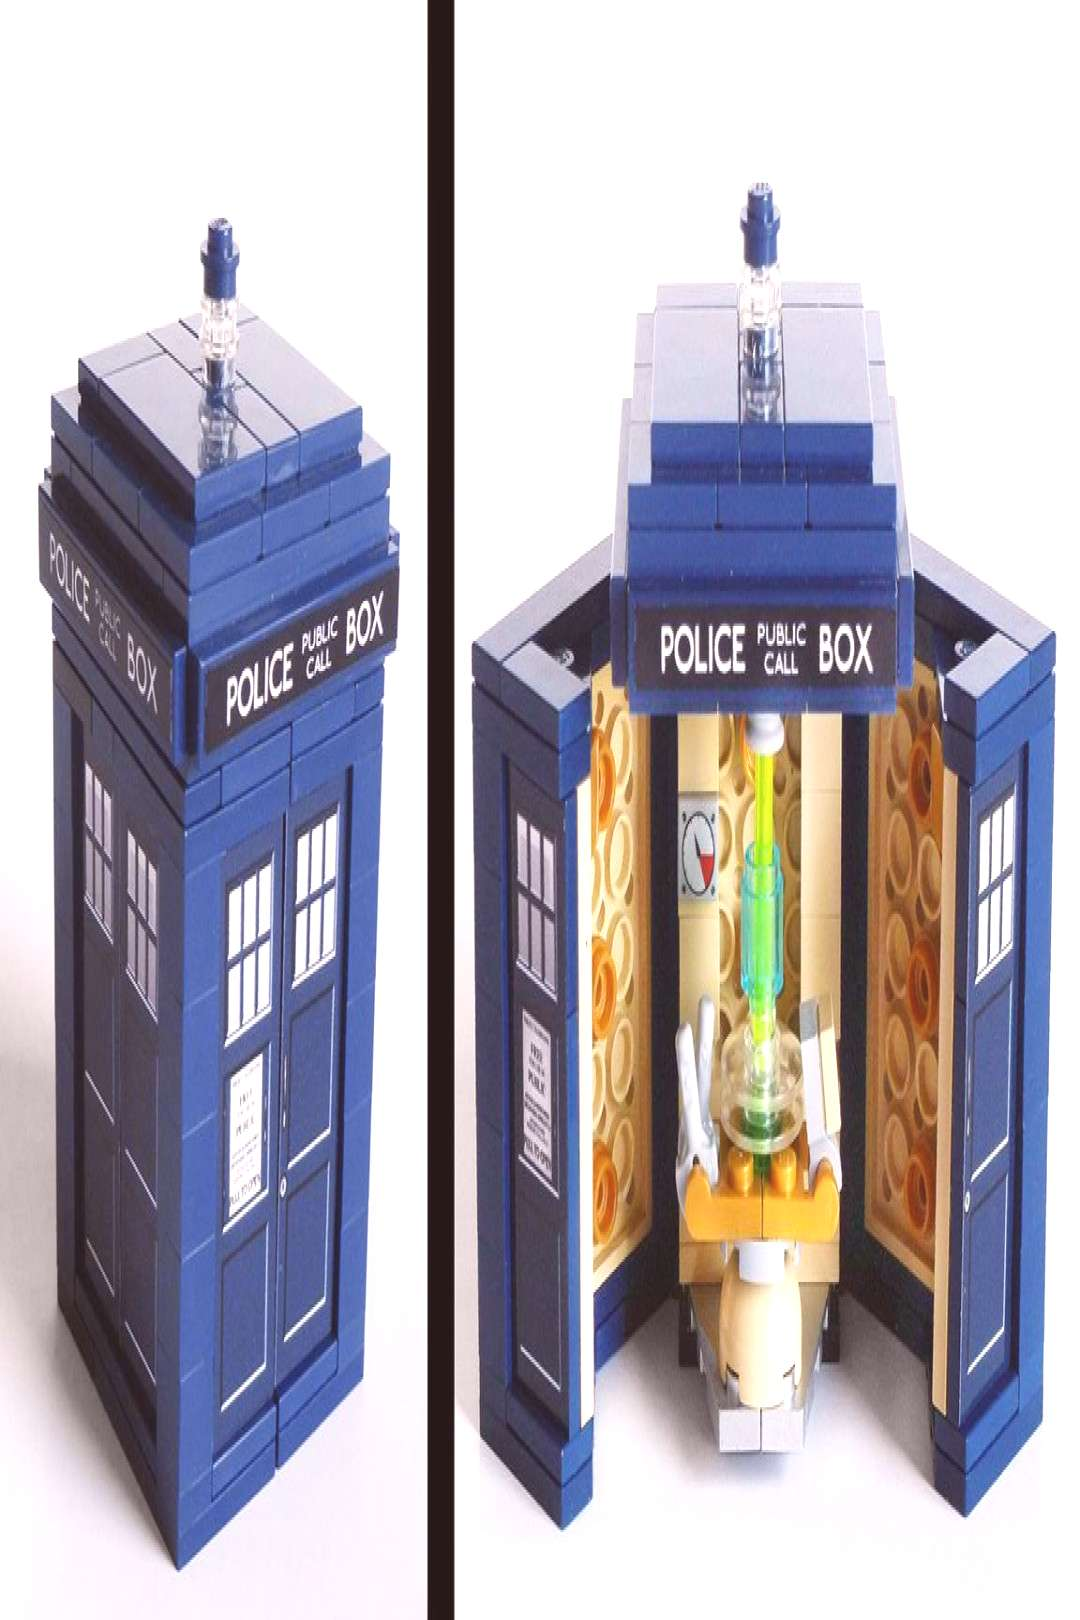 10th Doctors TARDIS - UPDATE 3/16/14We will be adding a poll regarding which companion should be